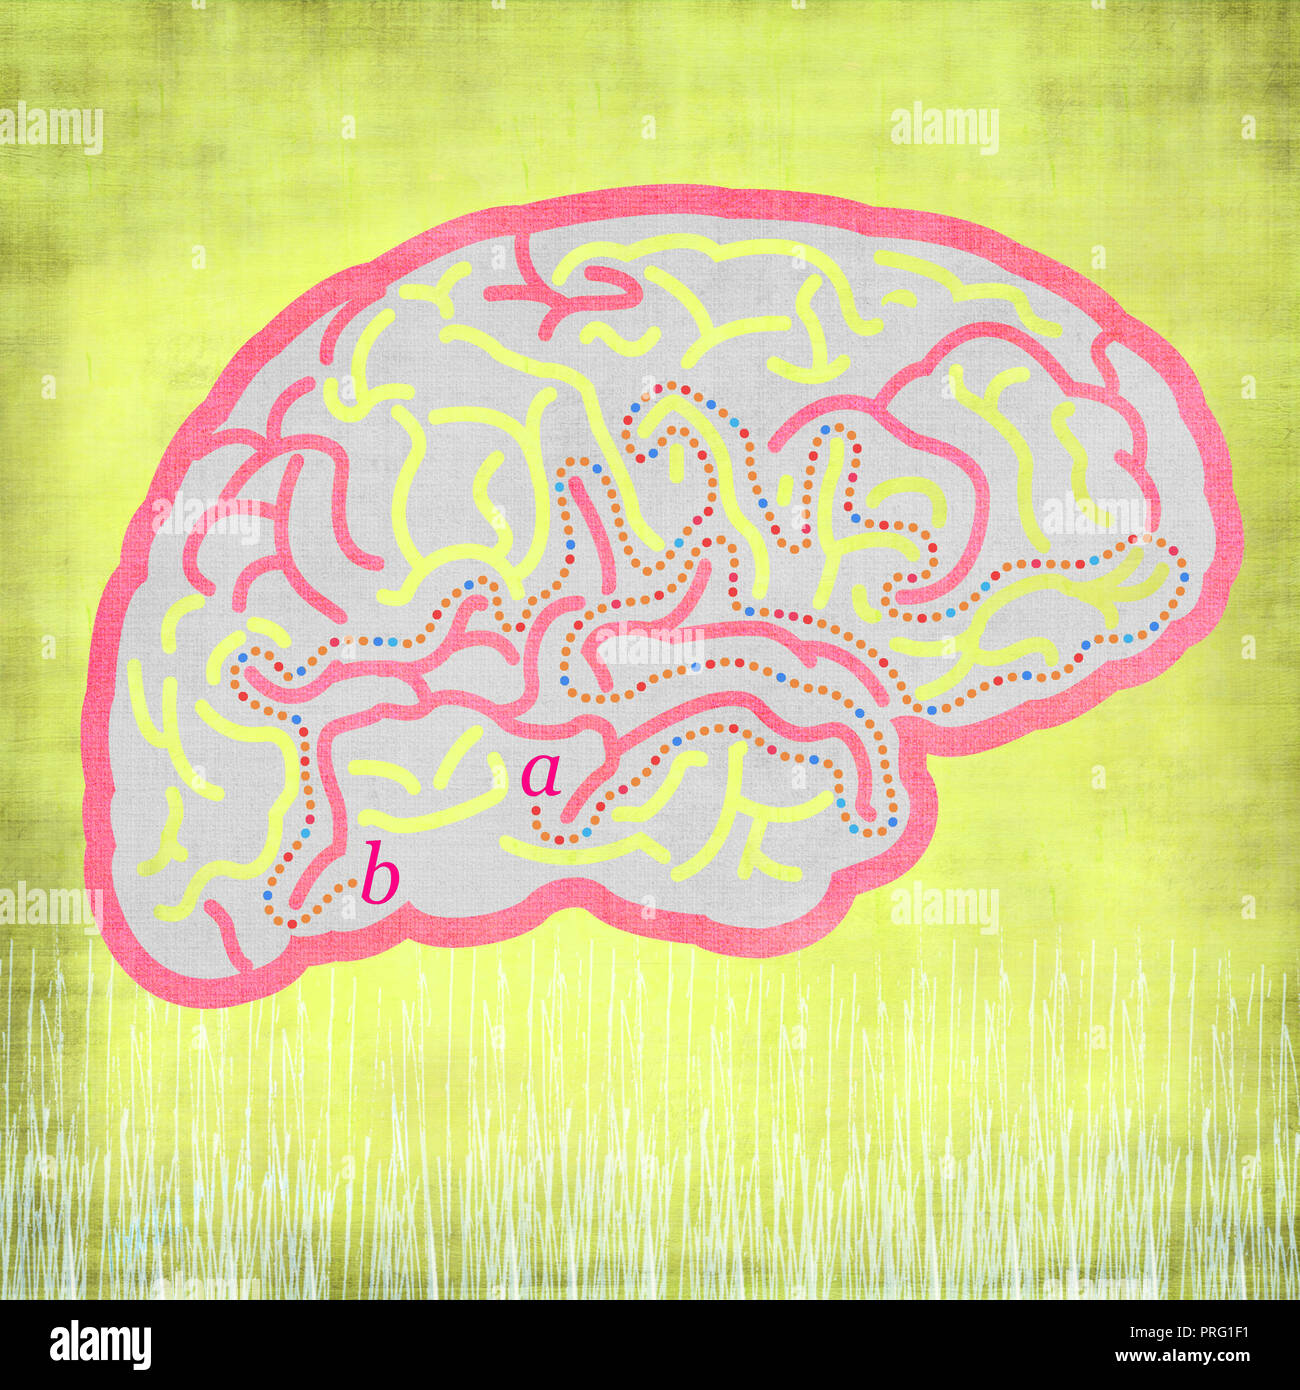 brains with characters - Stock Image